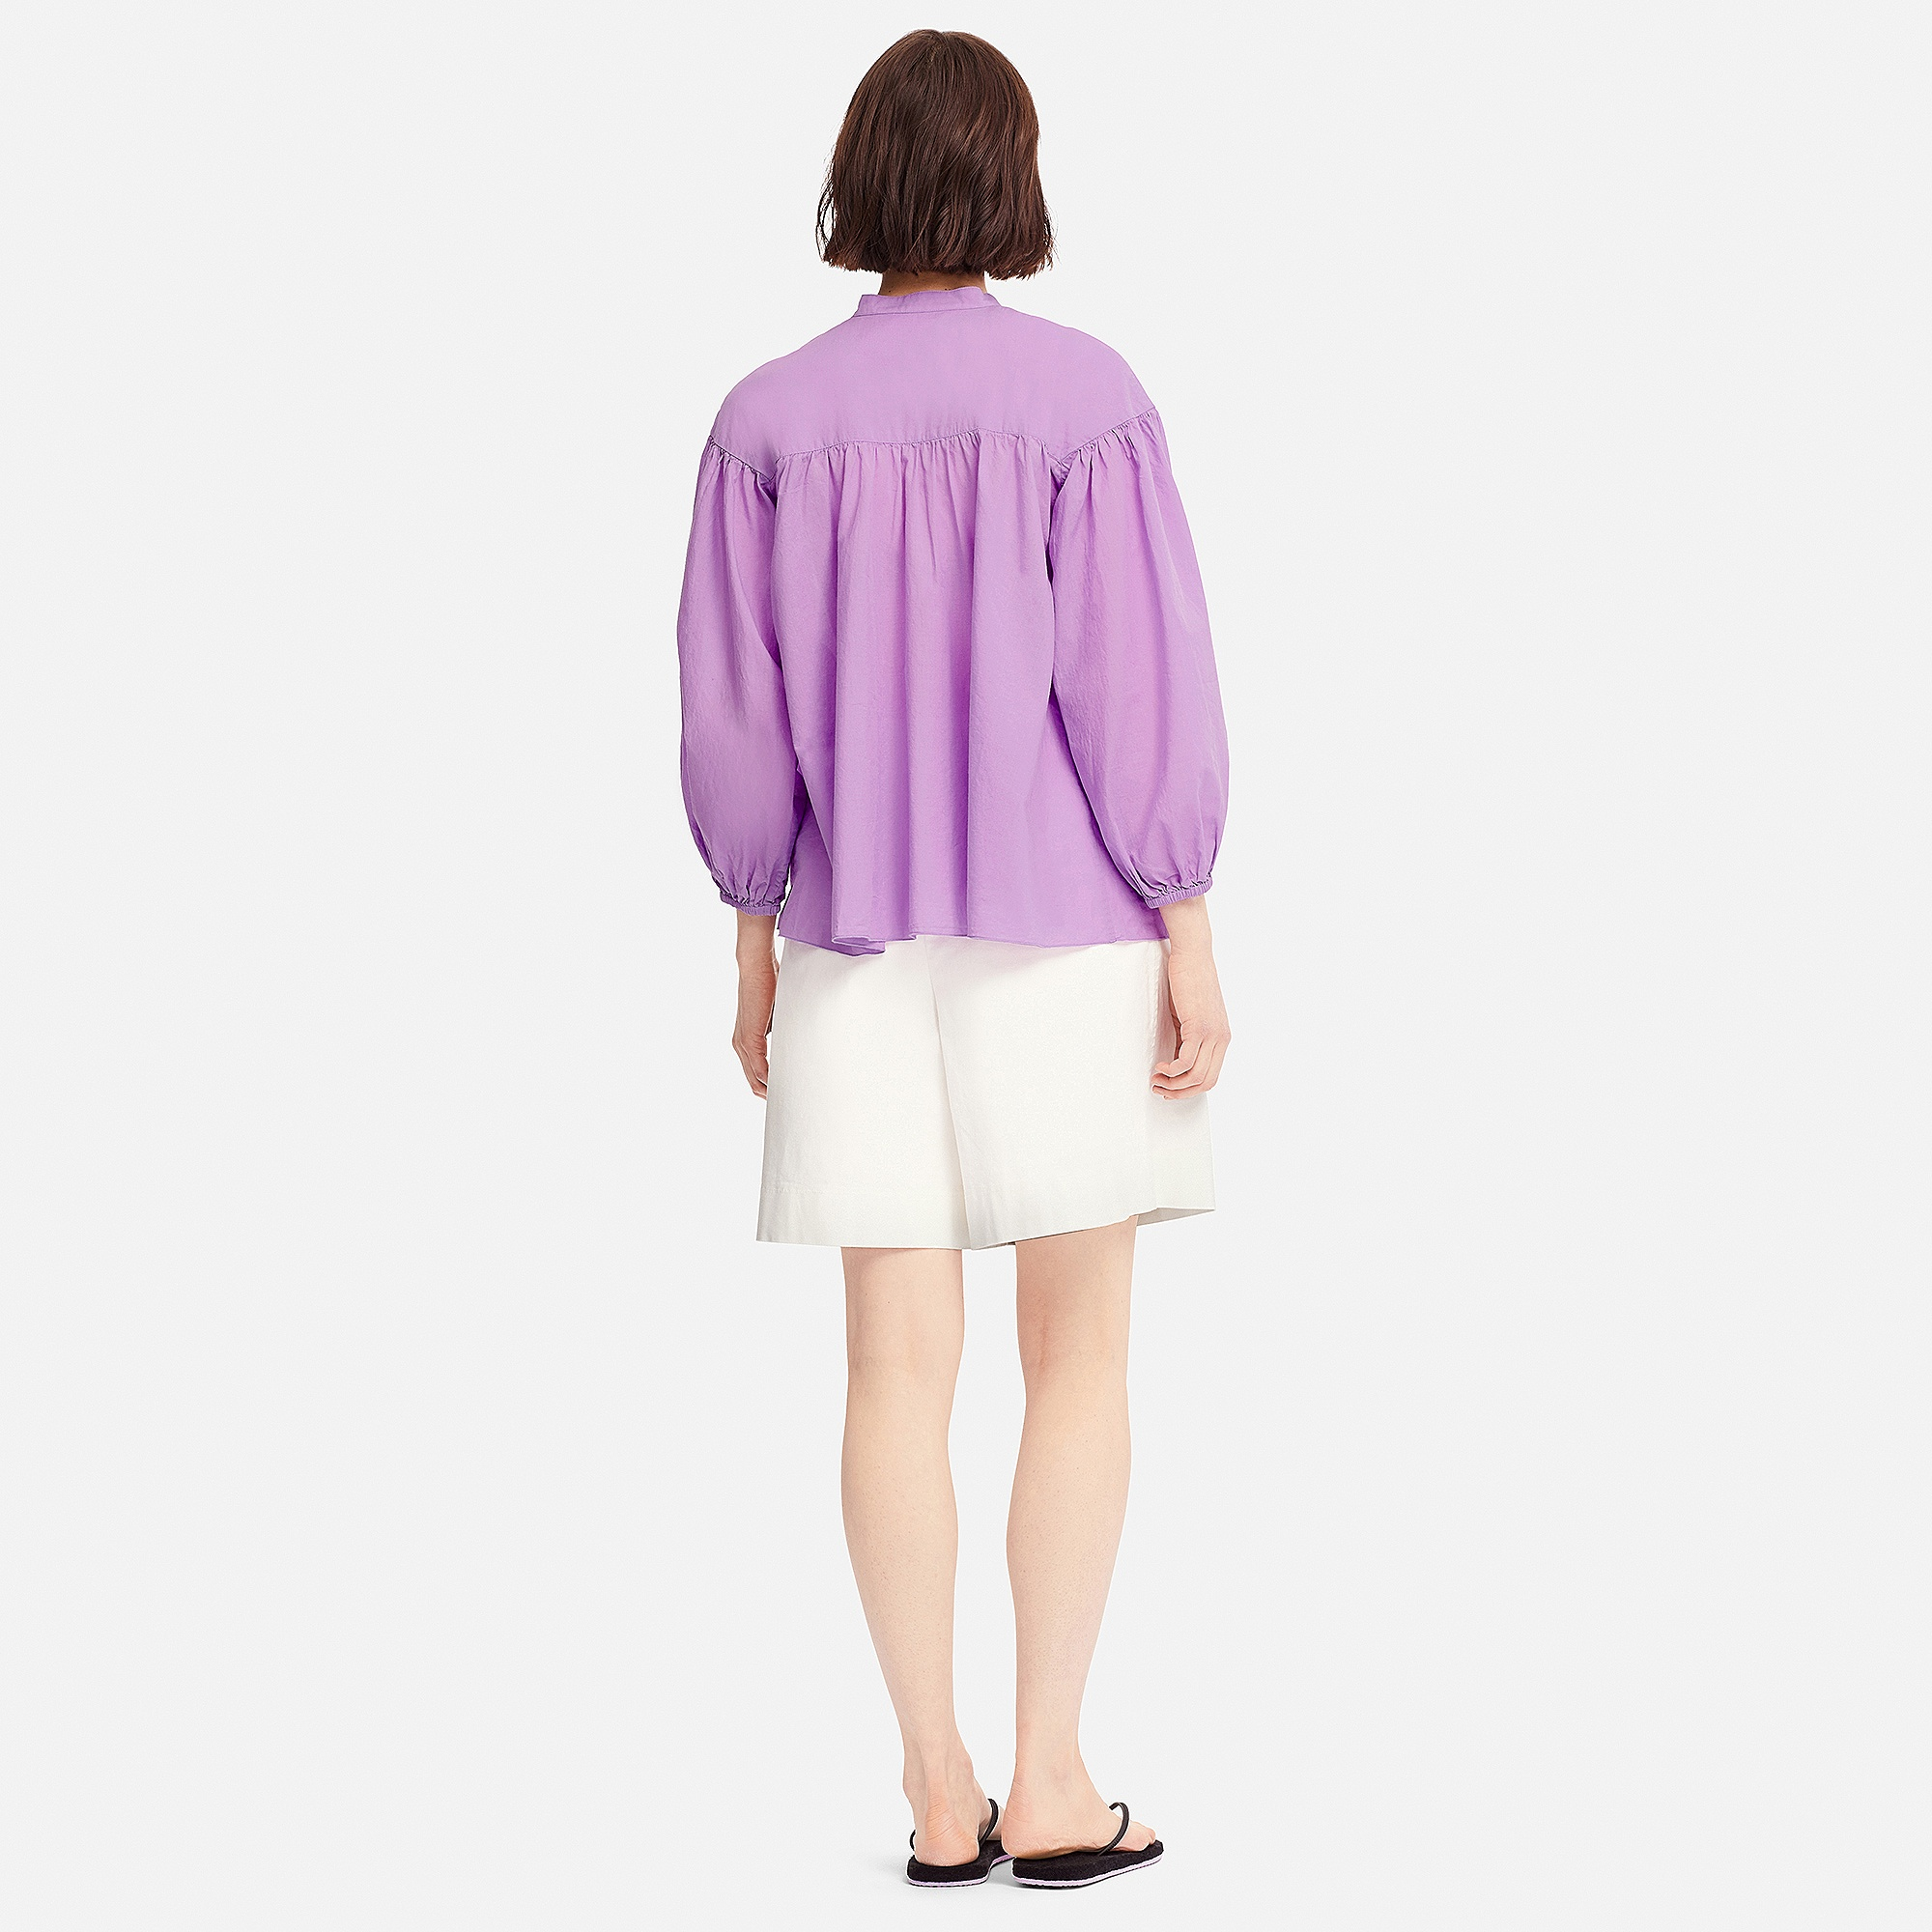 0f53ab104bd278 Uniqlo WOMEN Tomas Maier 100% SOFT COTTON GATHERED 3 4 SLEEVE BLOUSE ...